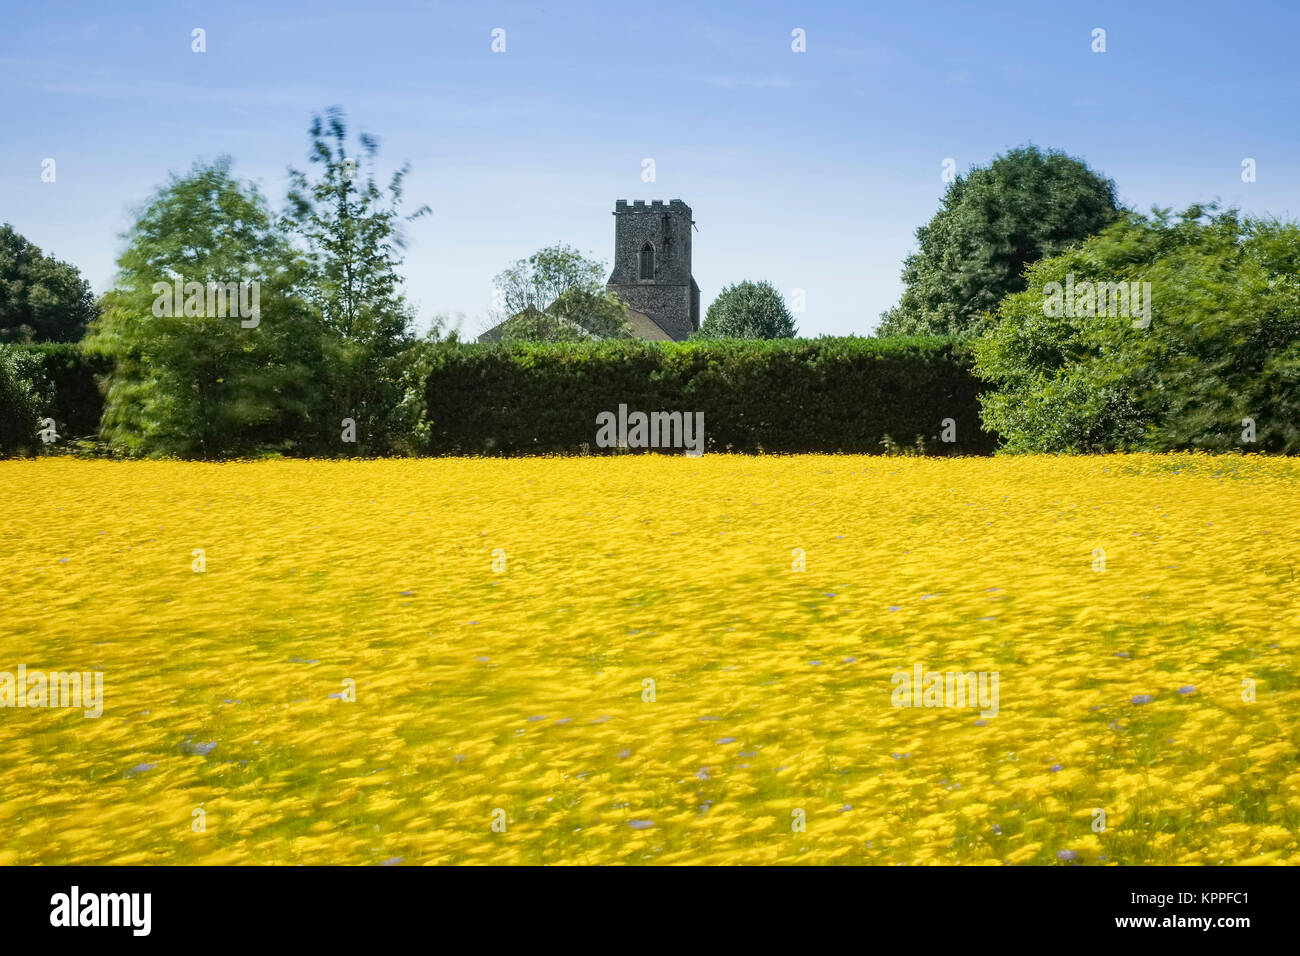 FLOWER MEADOW AT EAST RUSTON OLD VICARAGE GARDENS IN WIND - Stock Image